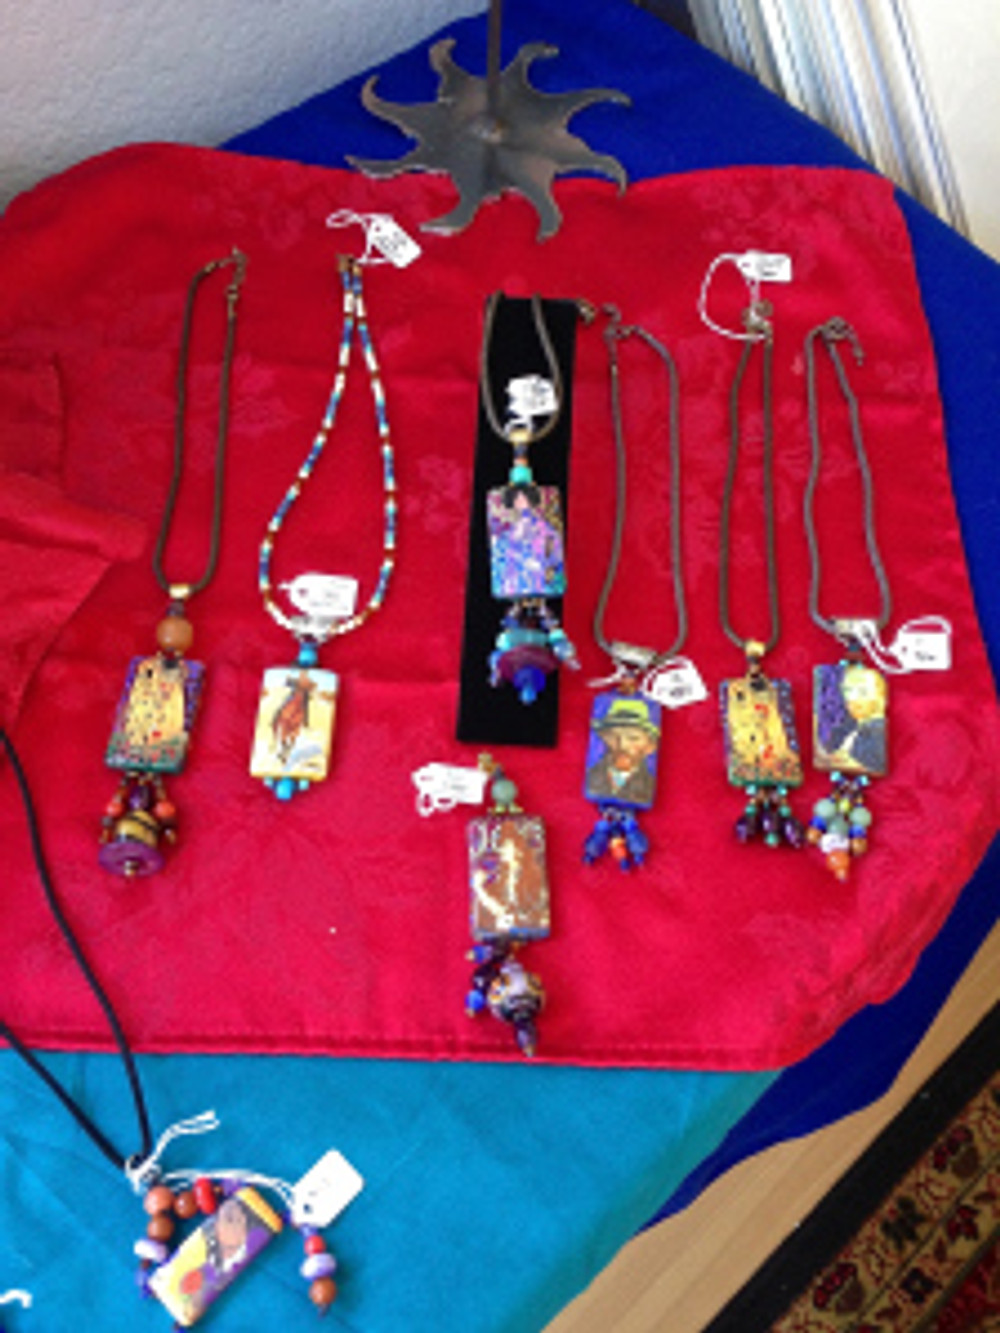 Art Pendants by Cathy Carey - made from hand painting collaged pieces of paintings by famous artists